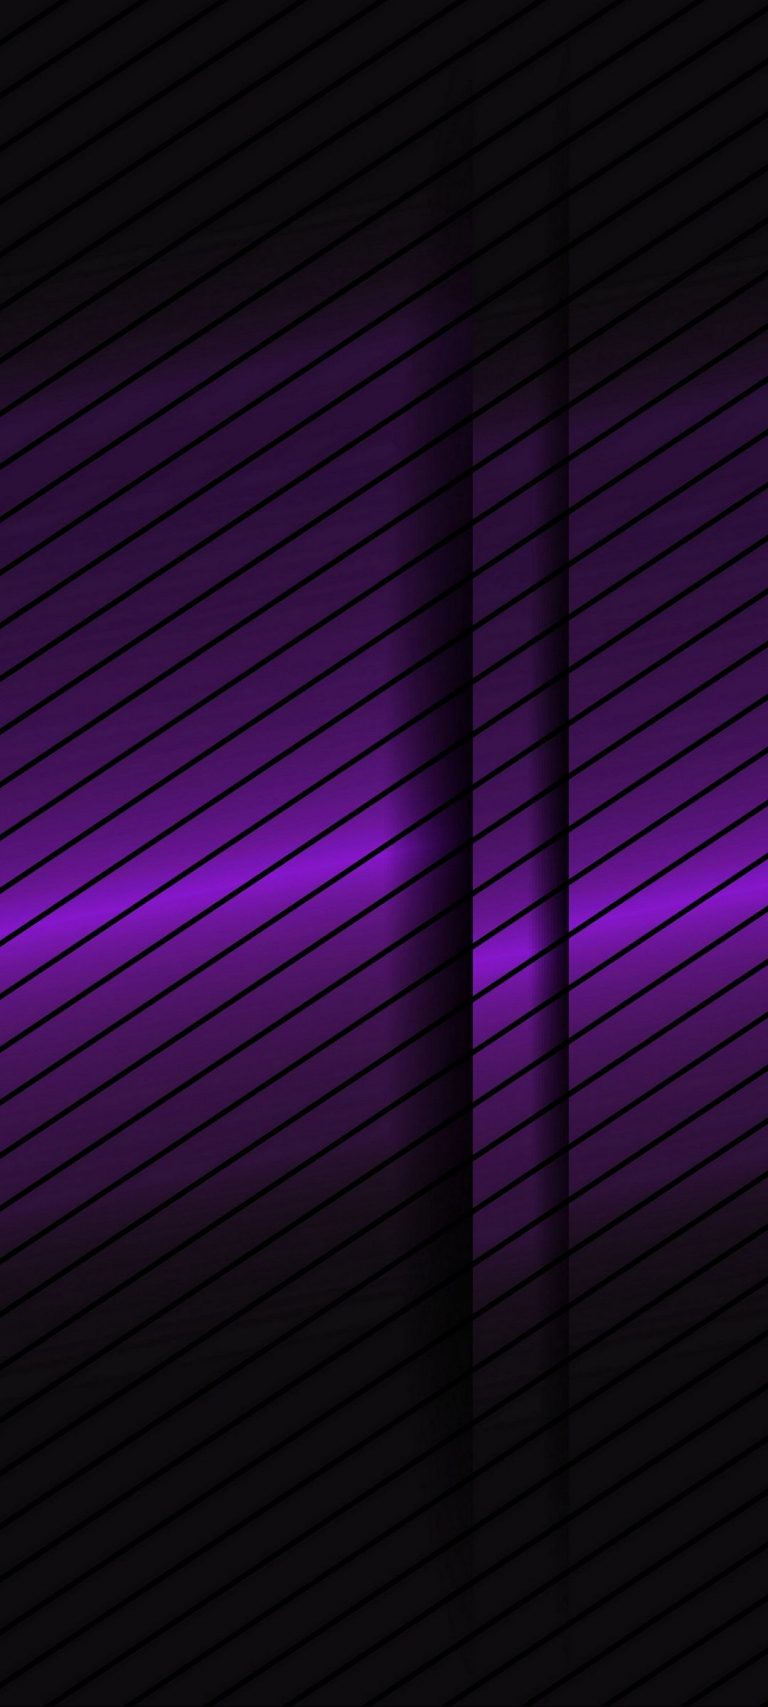 Abstraction Line Purple 1080x2400 768x1707